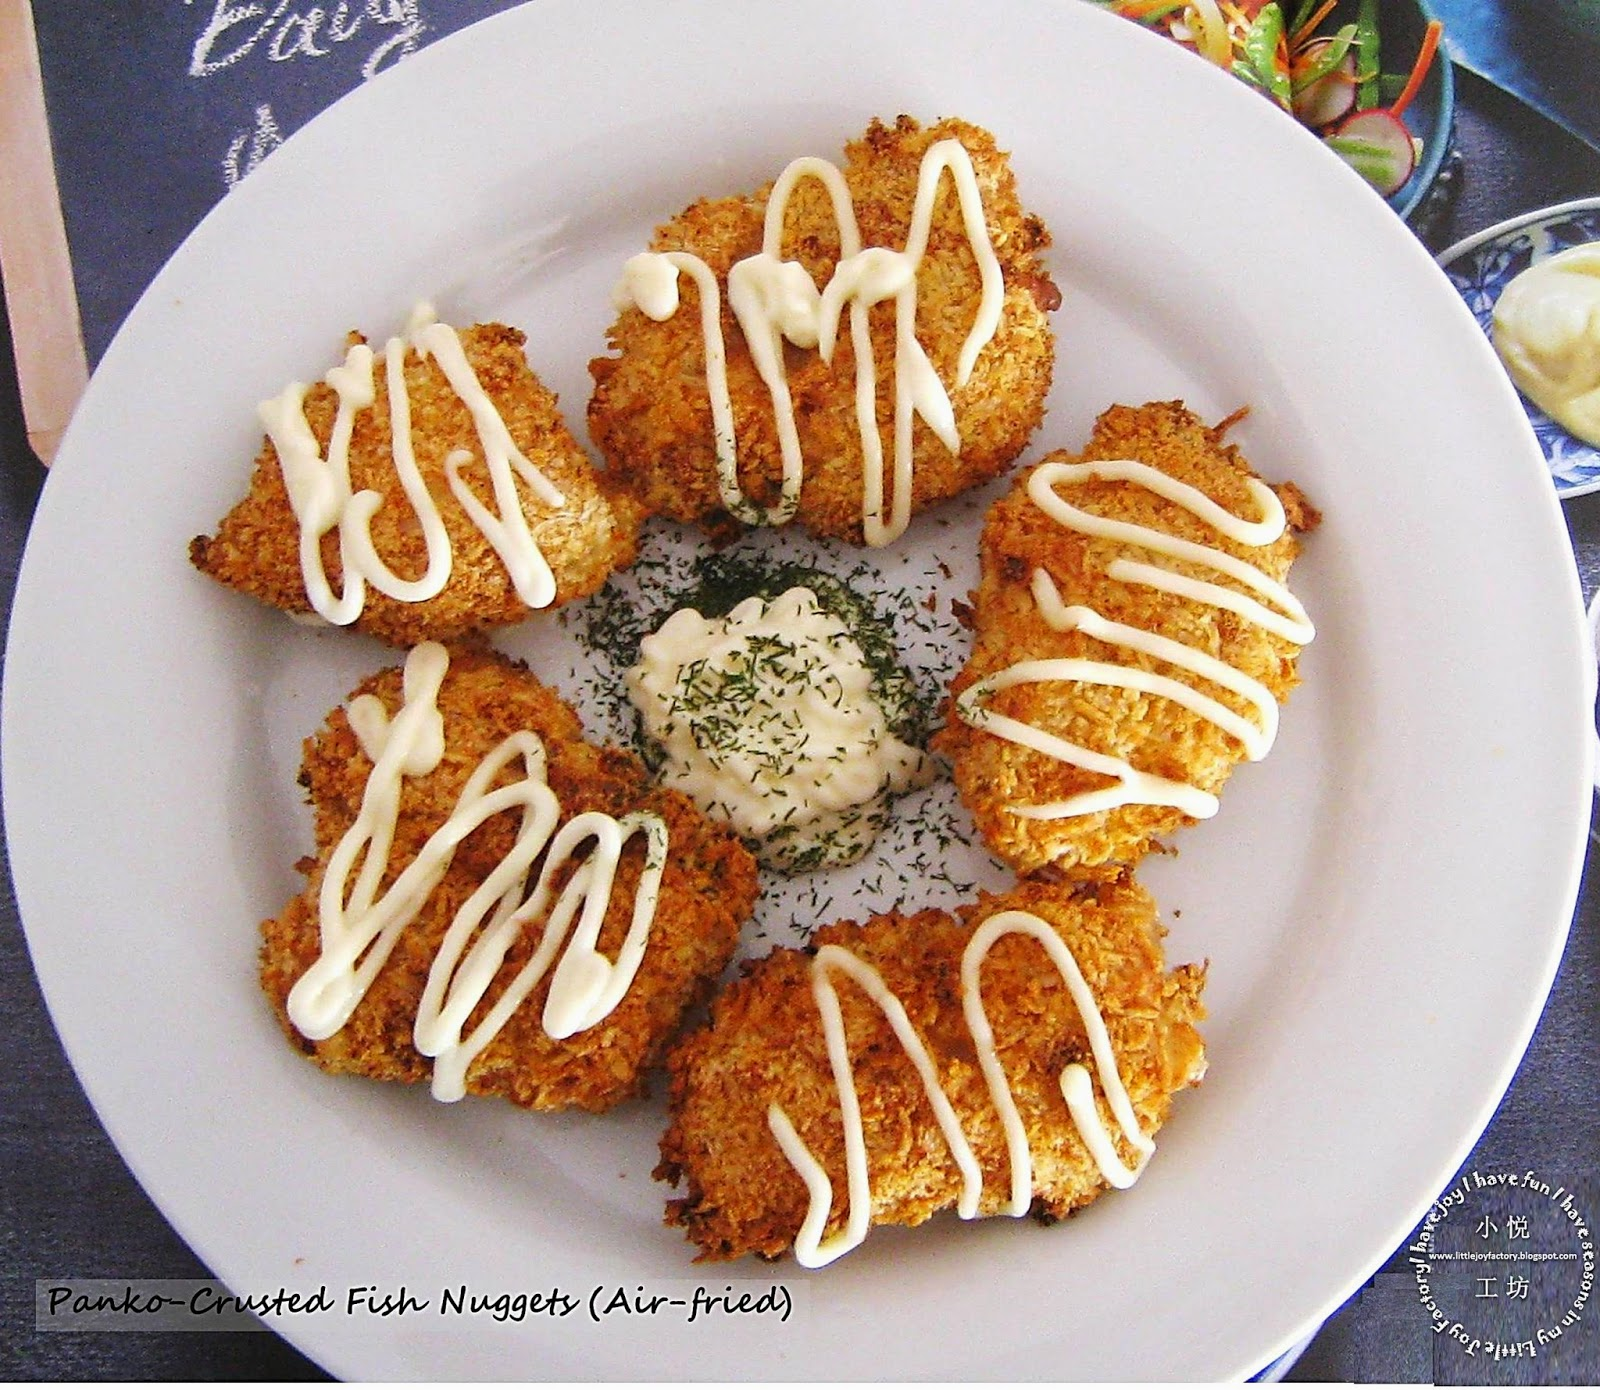 Little joy factory air fried panko crusted fish nuggets for Panko fried fish